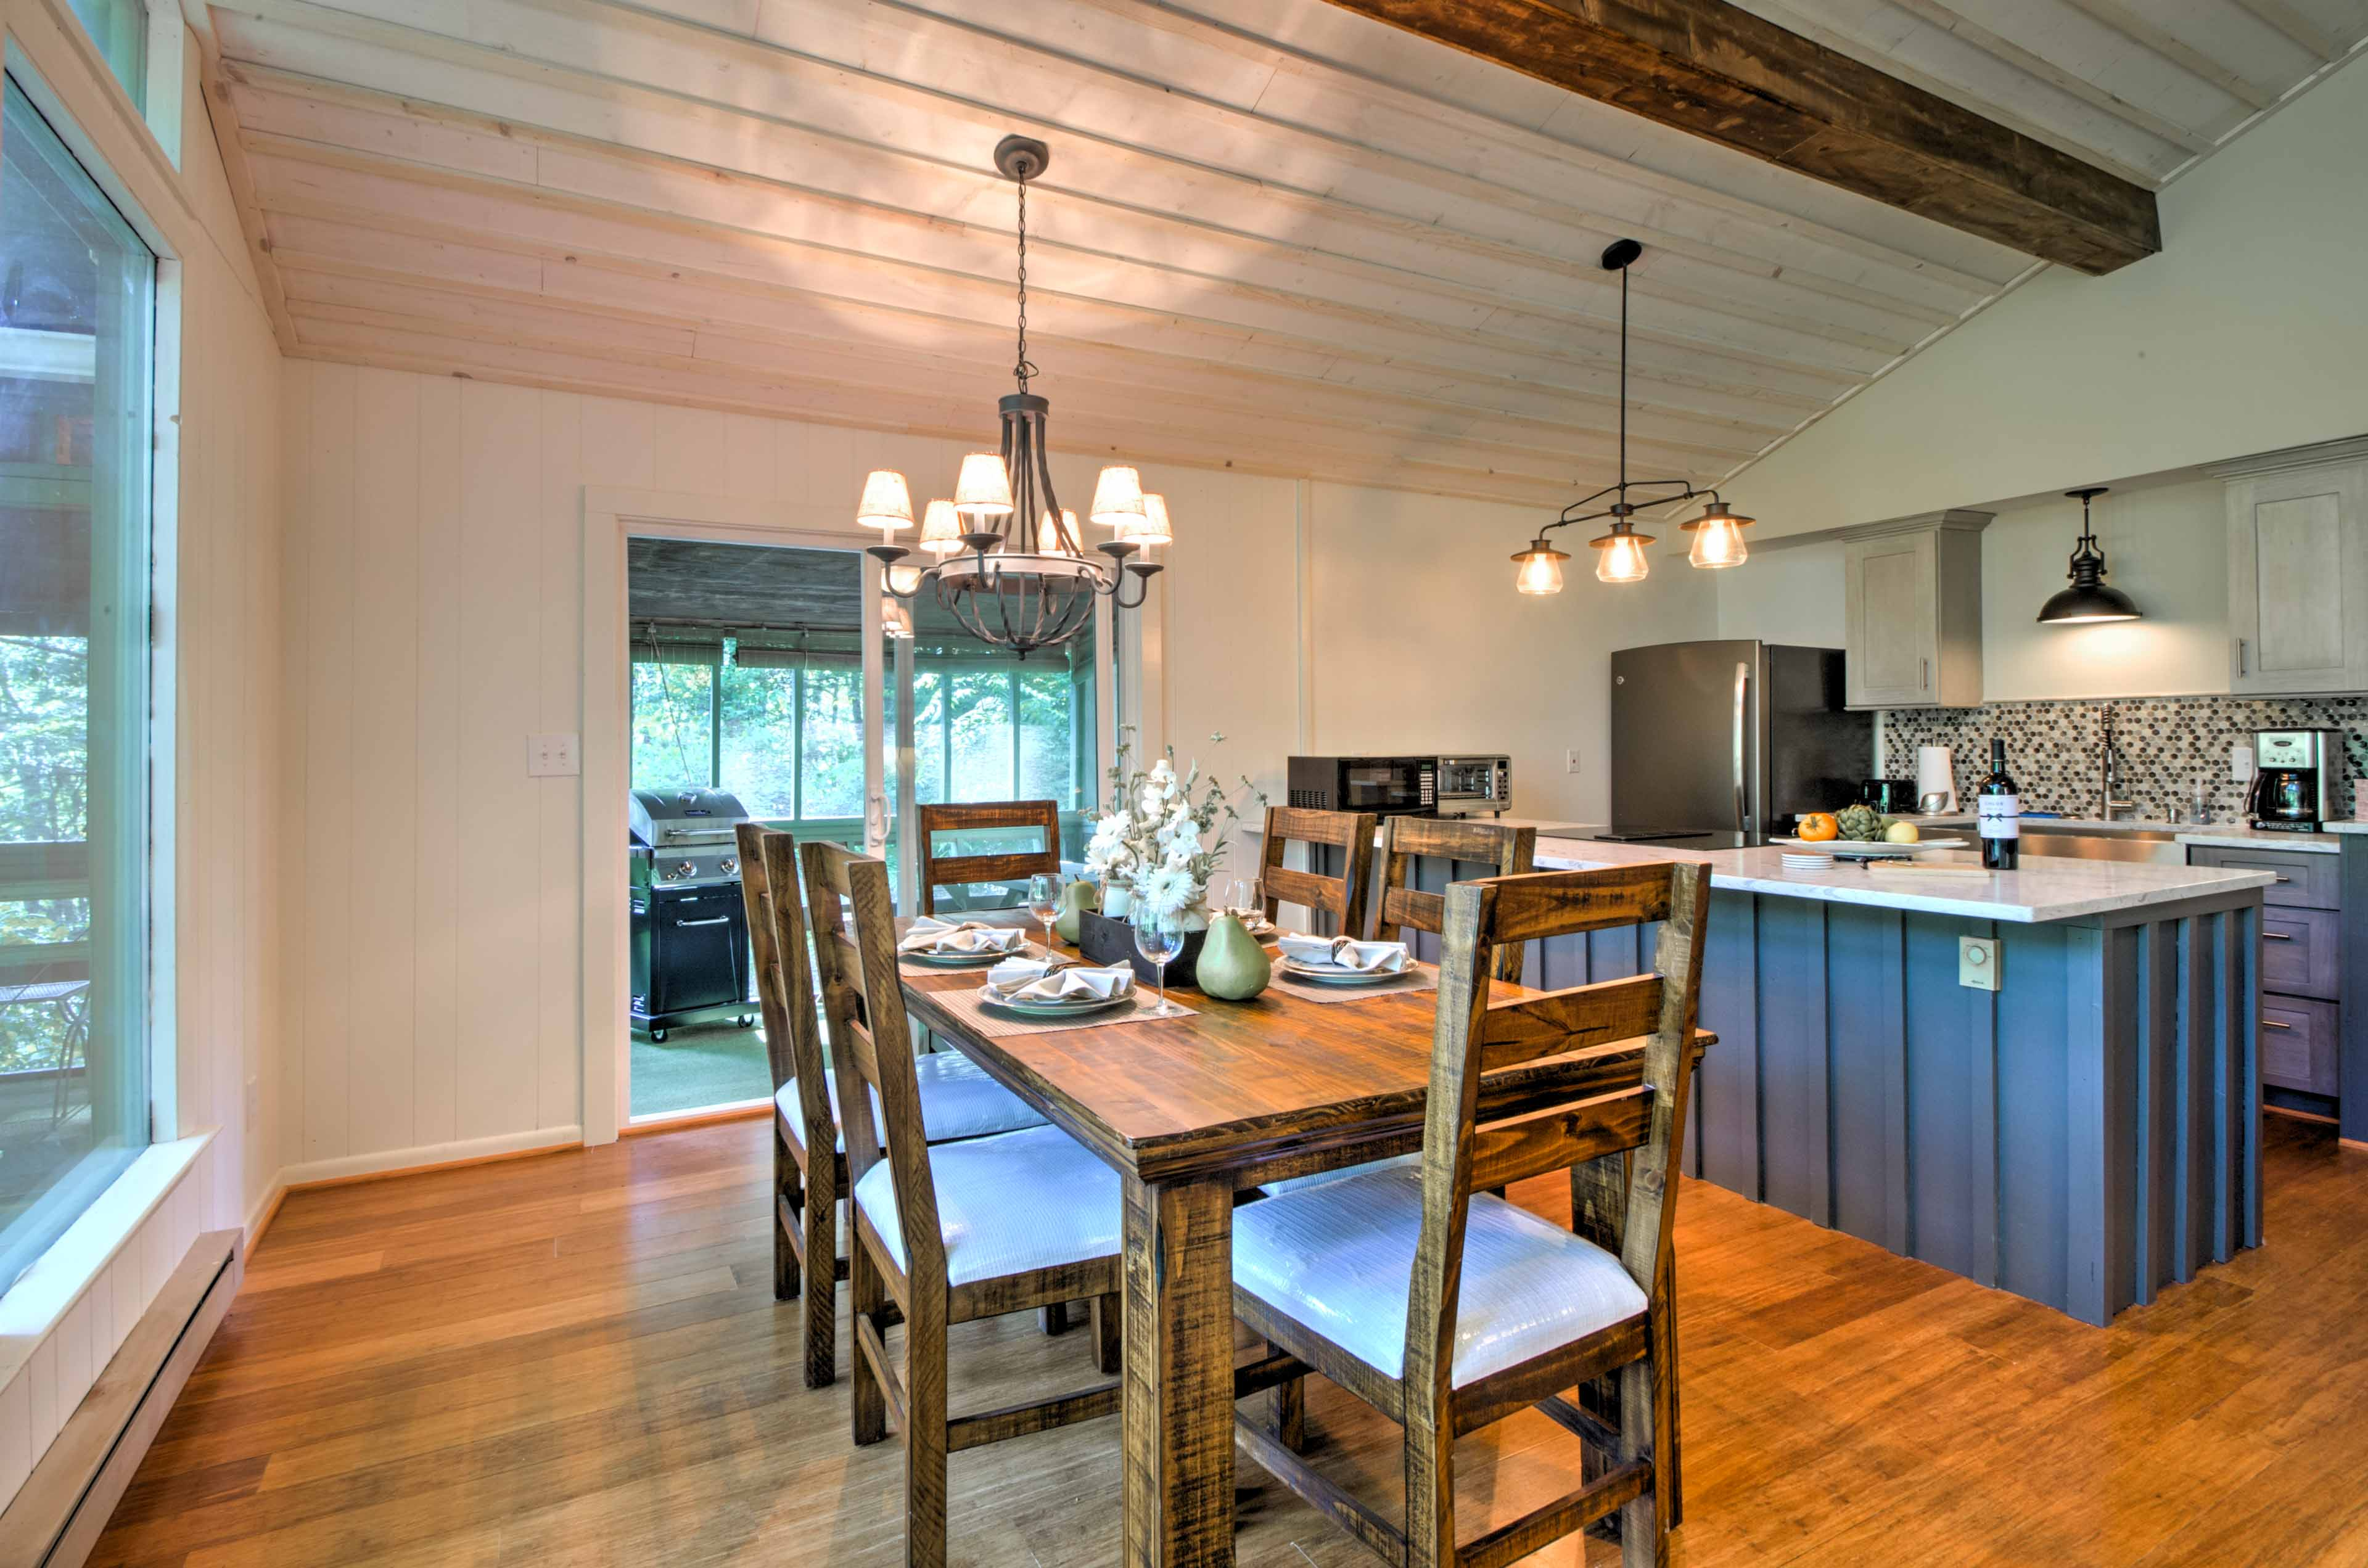 Everyone in your travel group can dine together at the table adjacent to the kitchen.